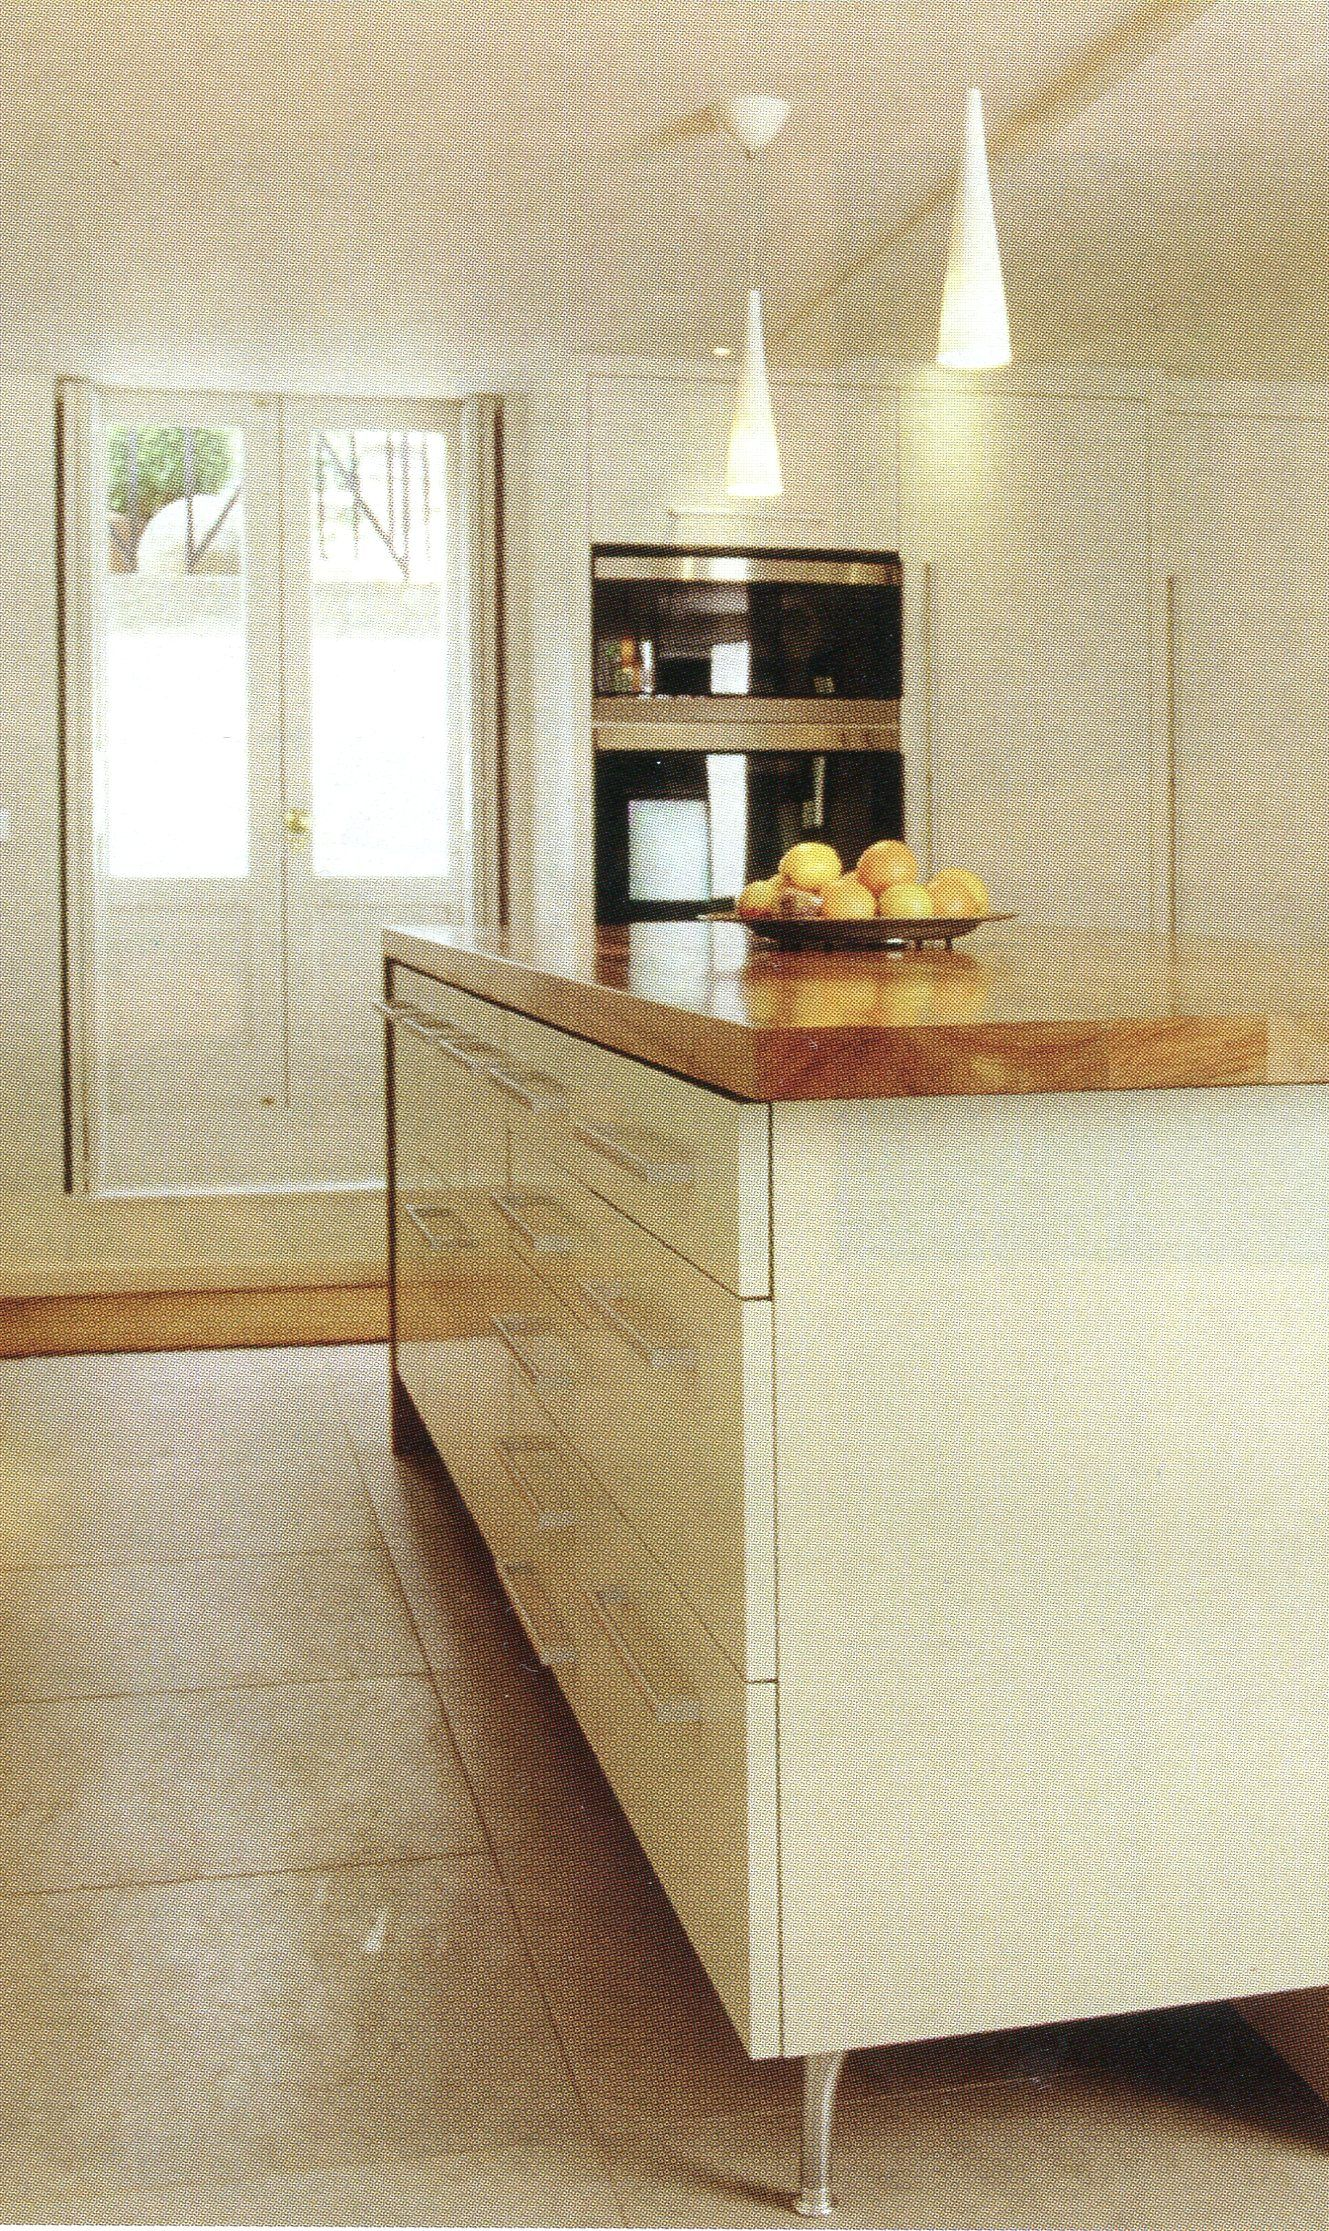 classic cream ivory and natural wood kitchen interior design kitchen natural wood kitchen on kitchen interior classic id=37341